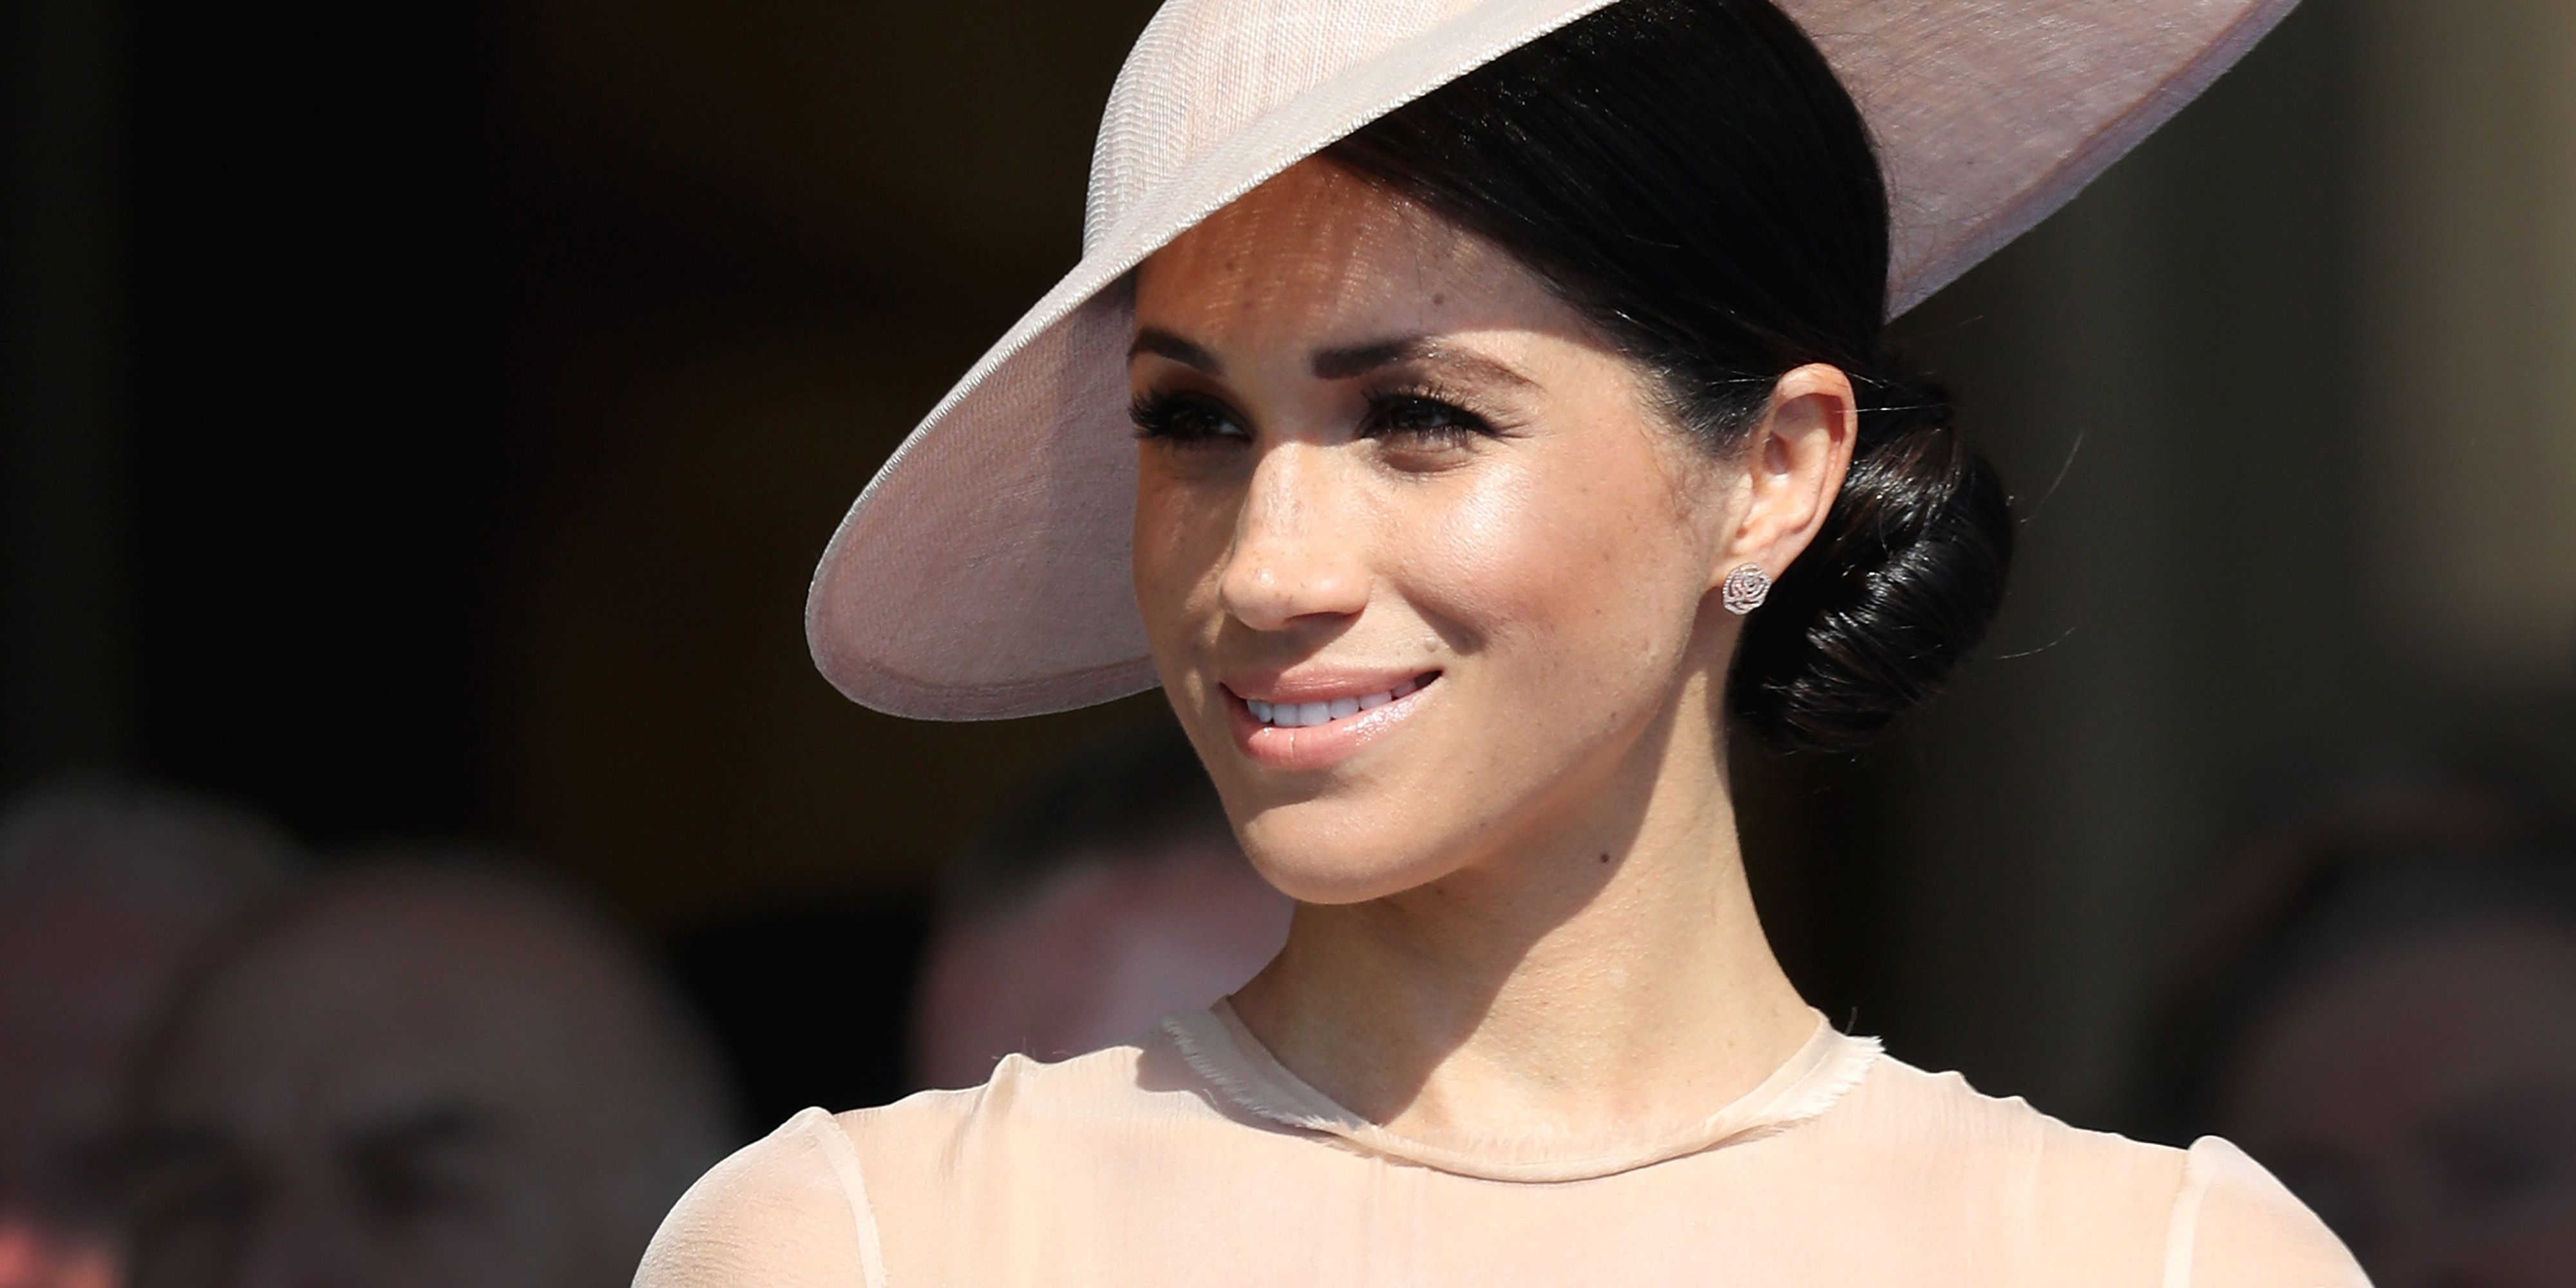 The Duchess of Sussex Is Reportedly Struggling To Not Defend Herself Against 'Cruel' Media